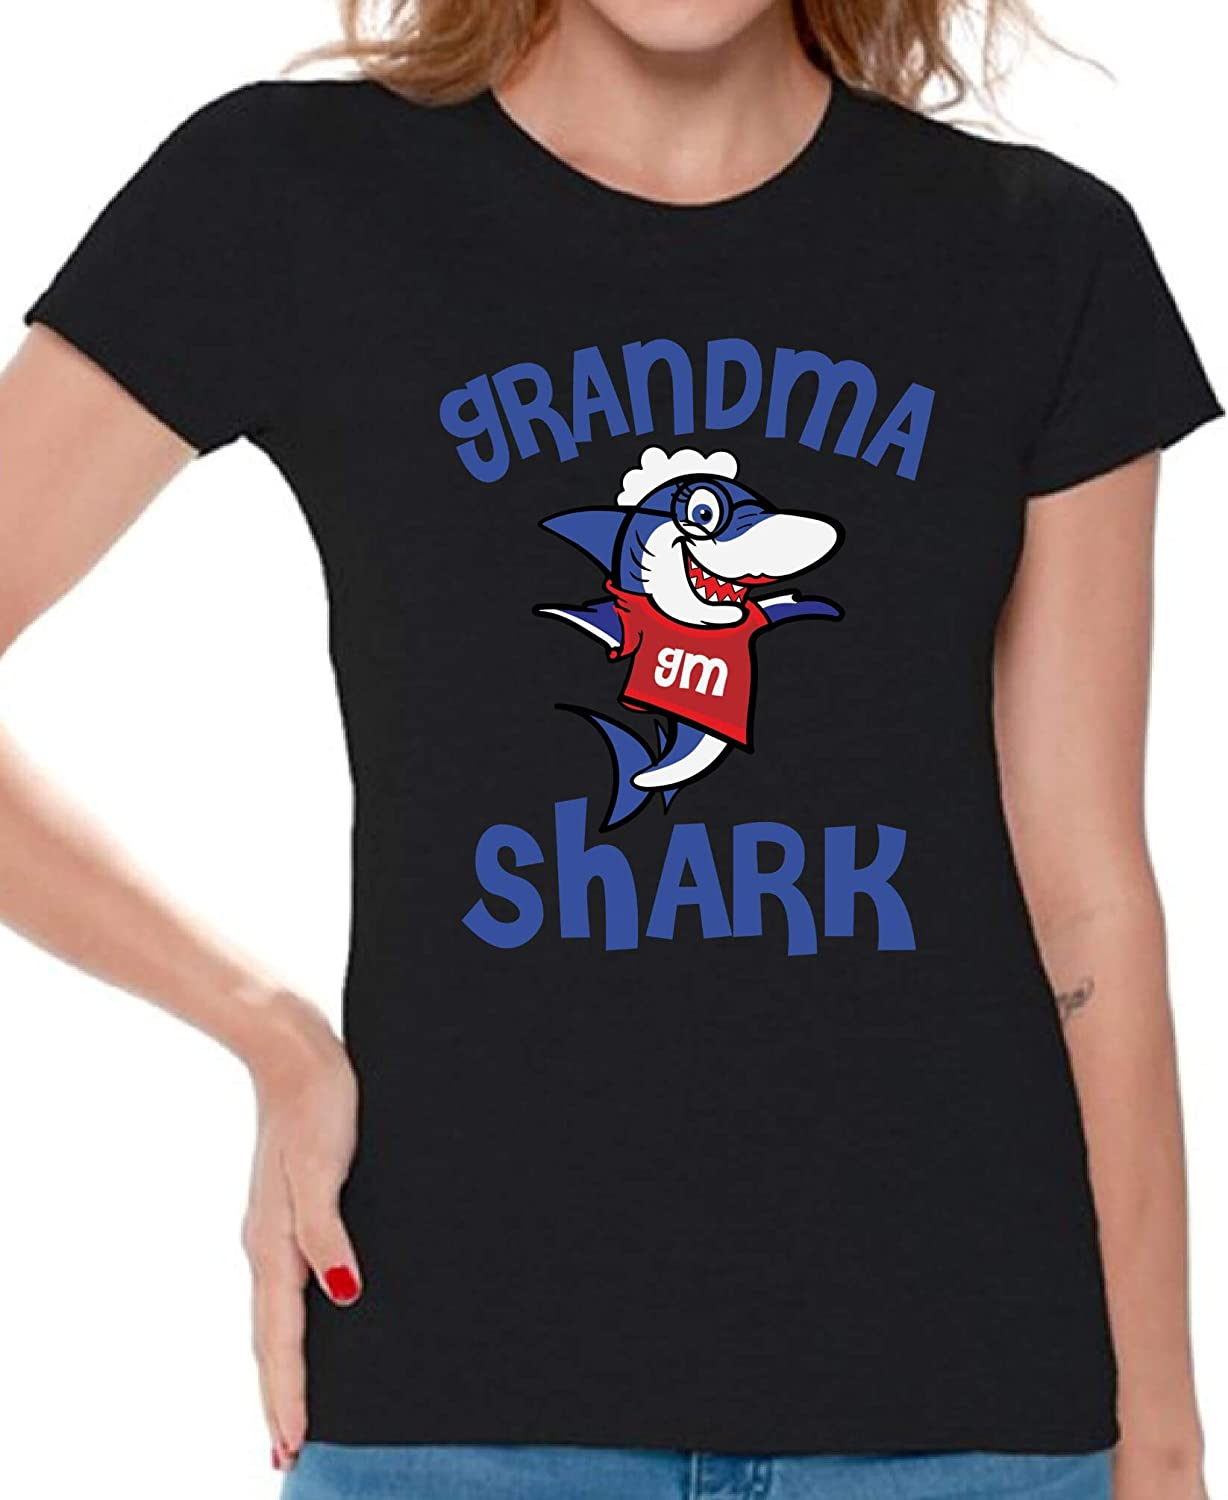 Awkward Styles Grandma Shark Tshirt Shark Family Shirt for Women Shark Gifts for Her